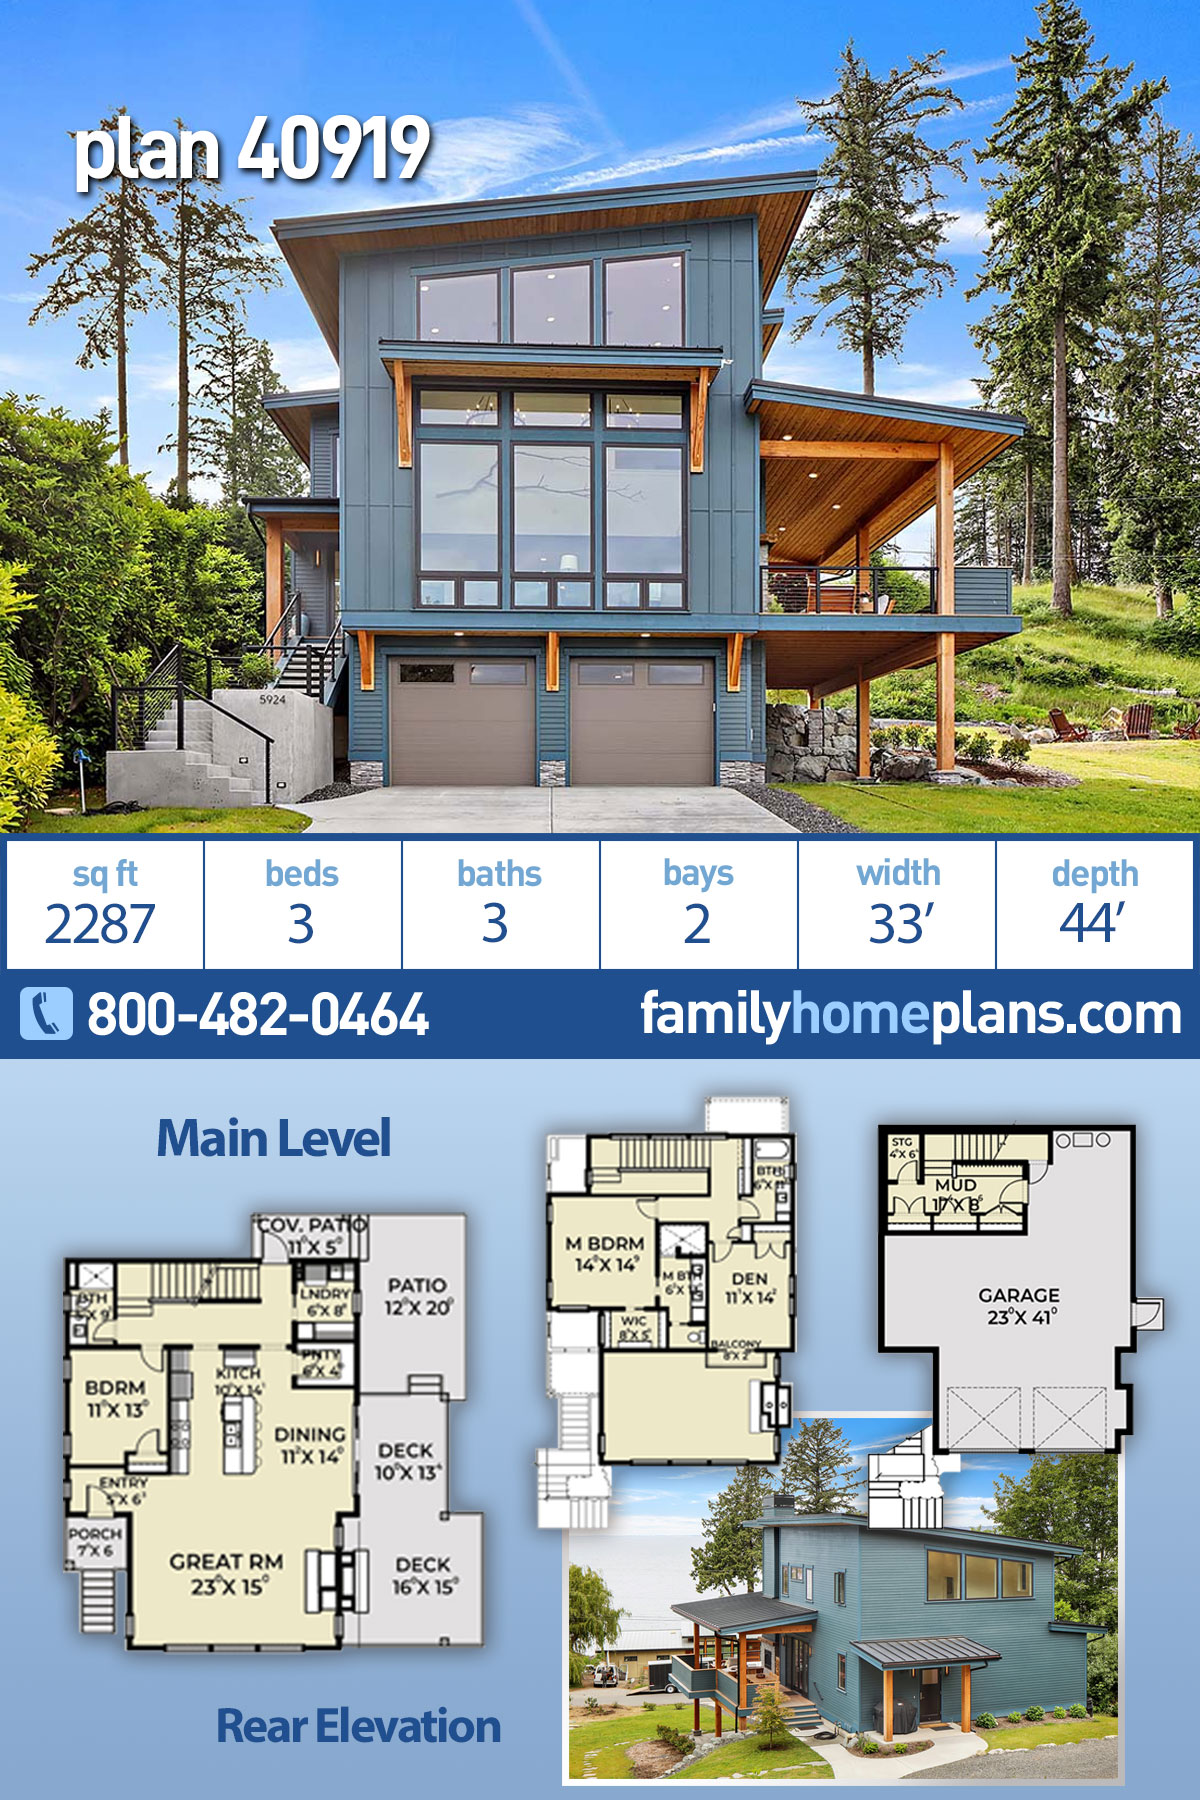 Contemporary, Modern House Plan 40919 with 3 Beds, 3 Baths, 2 Car Garage